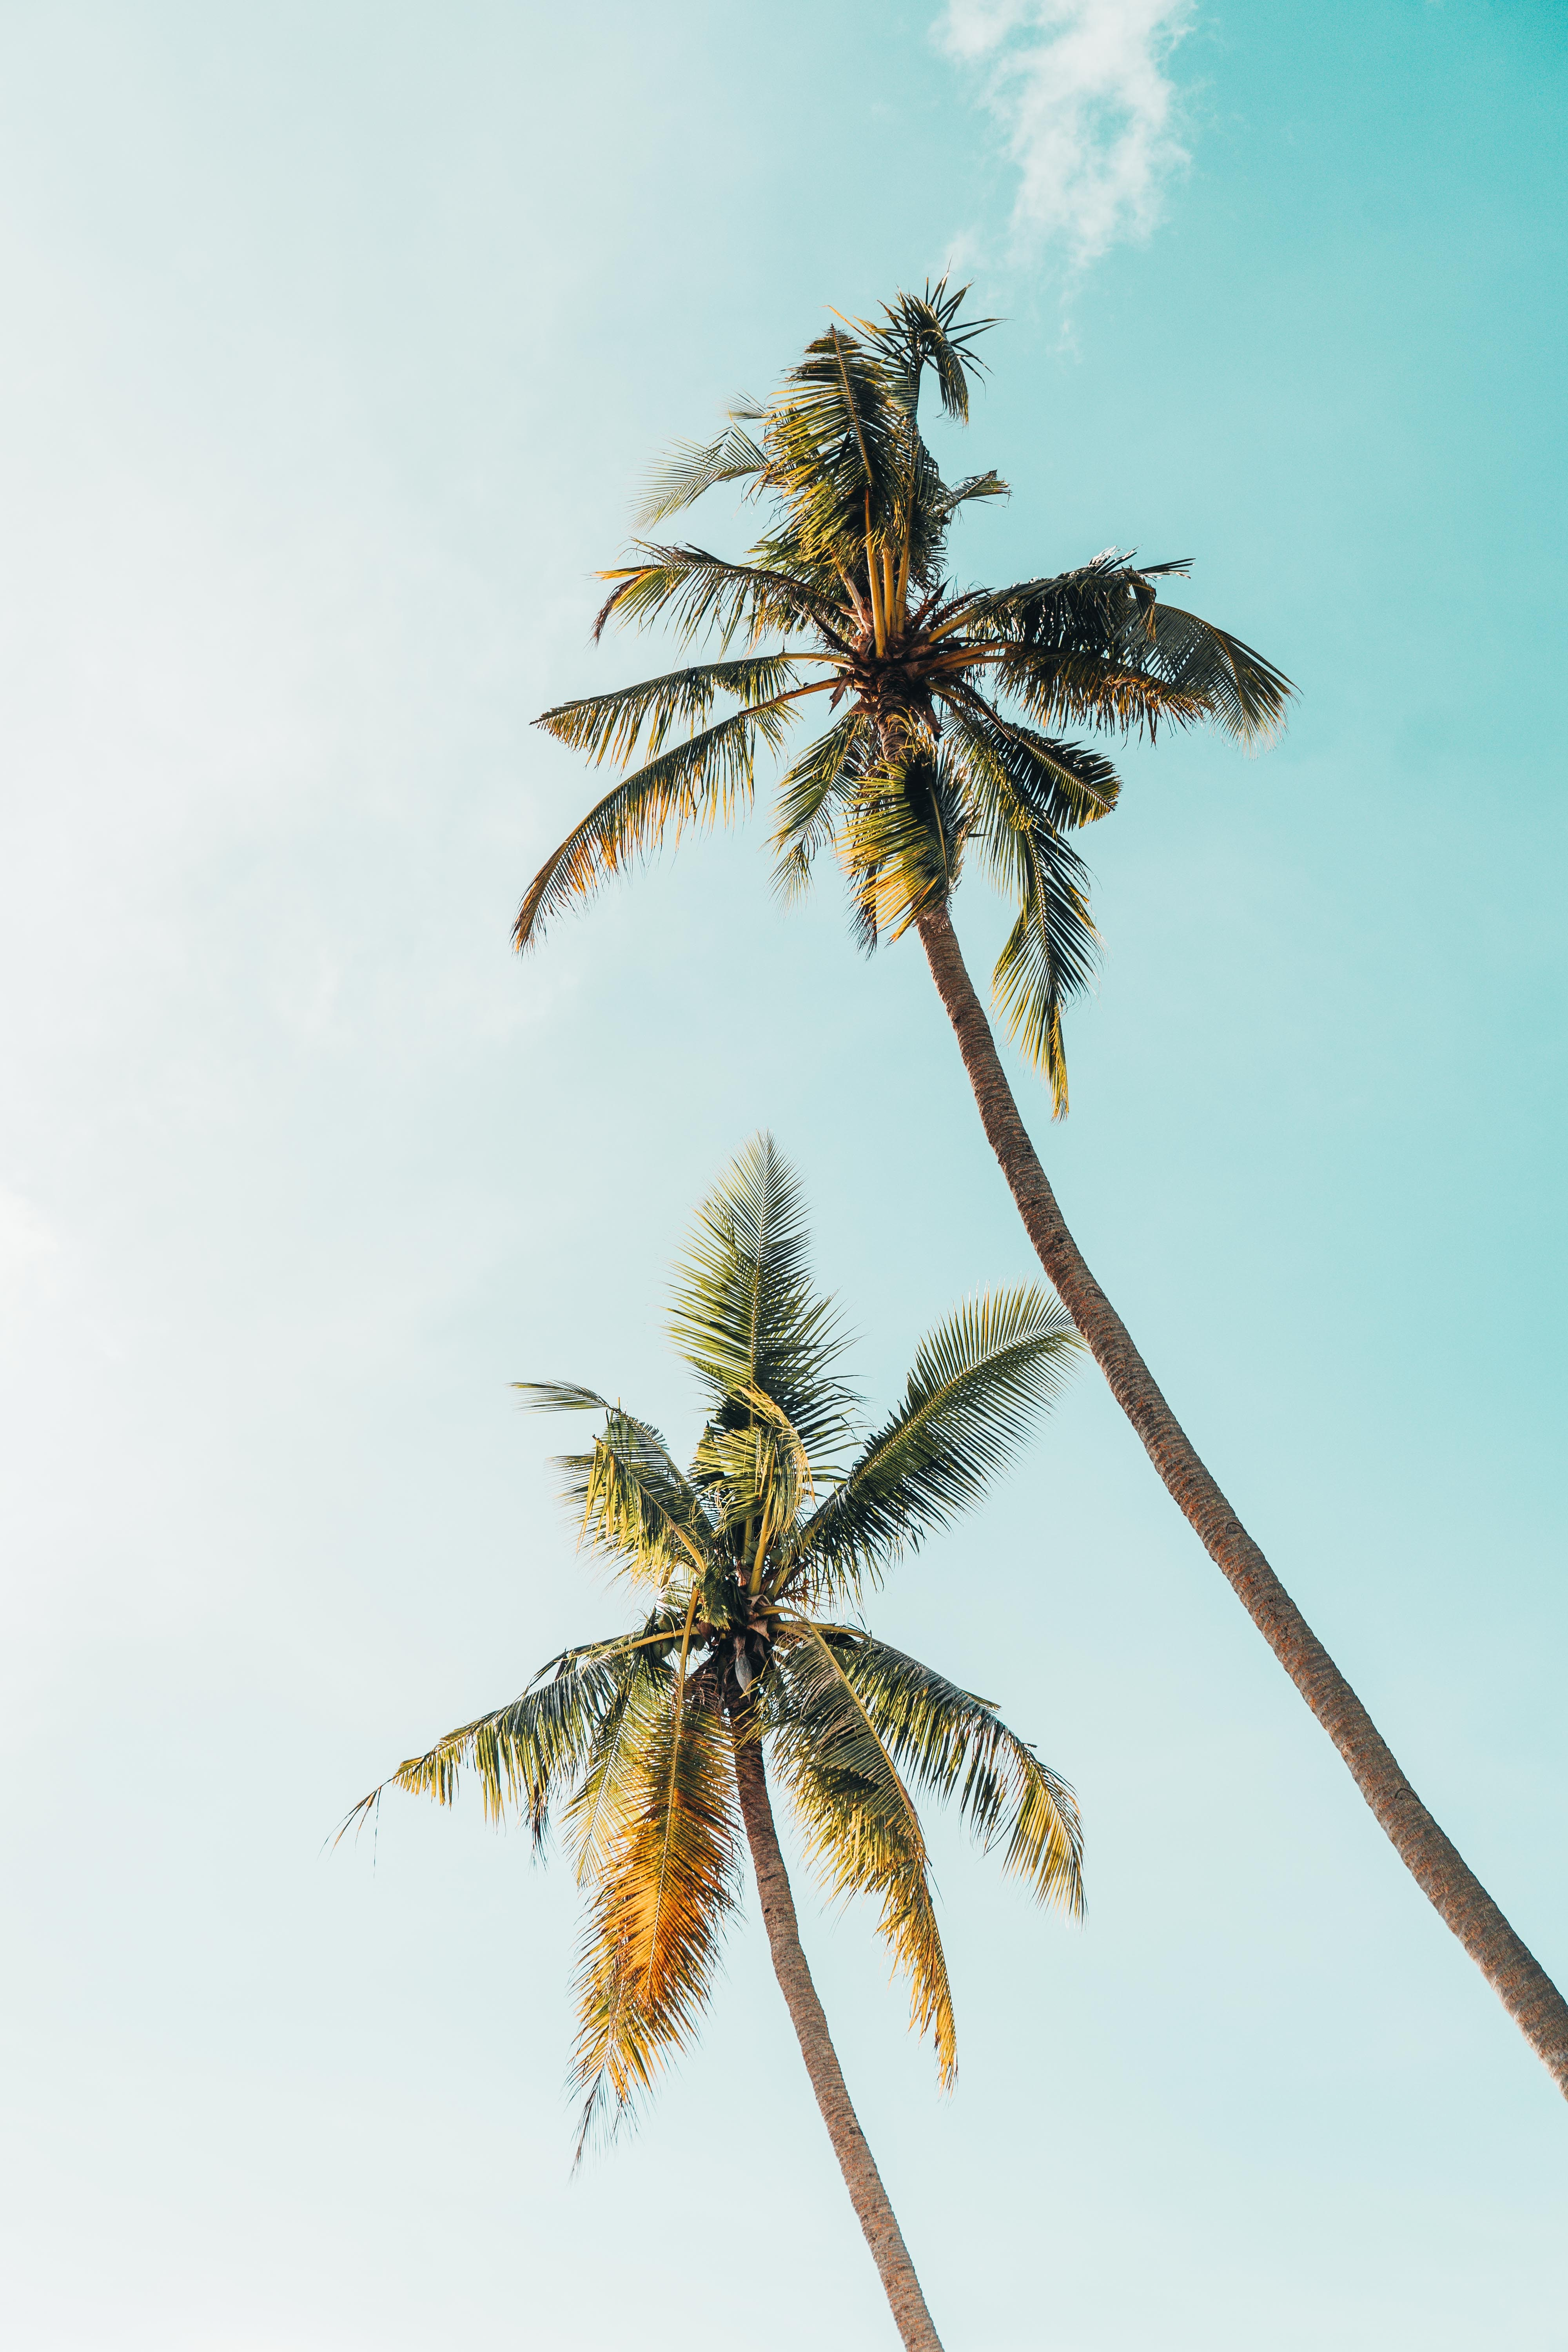 palm tree pictures download free images on unsplash